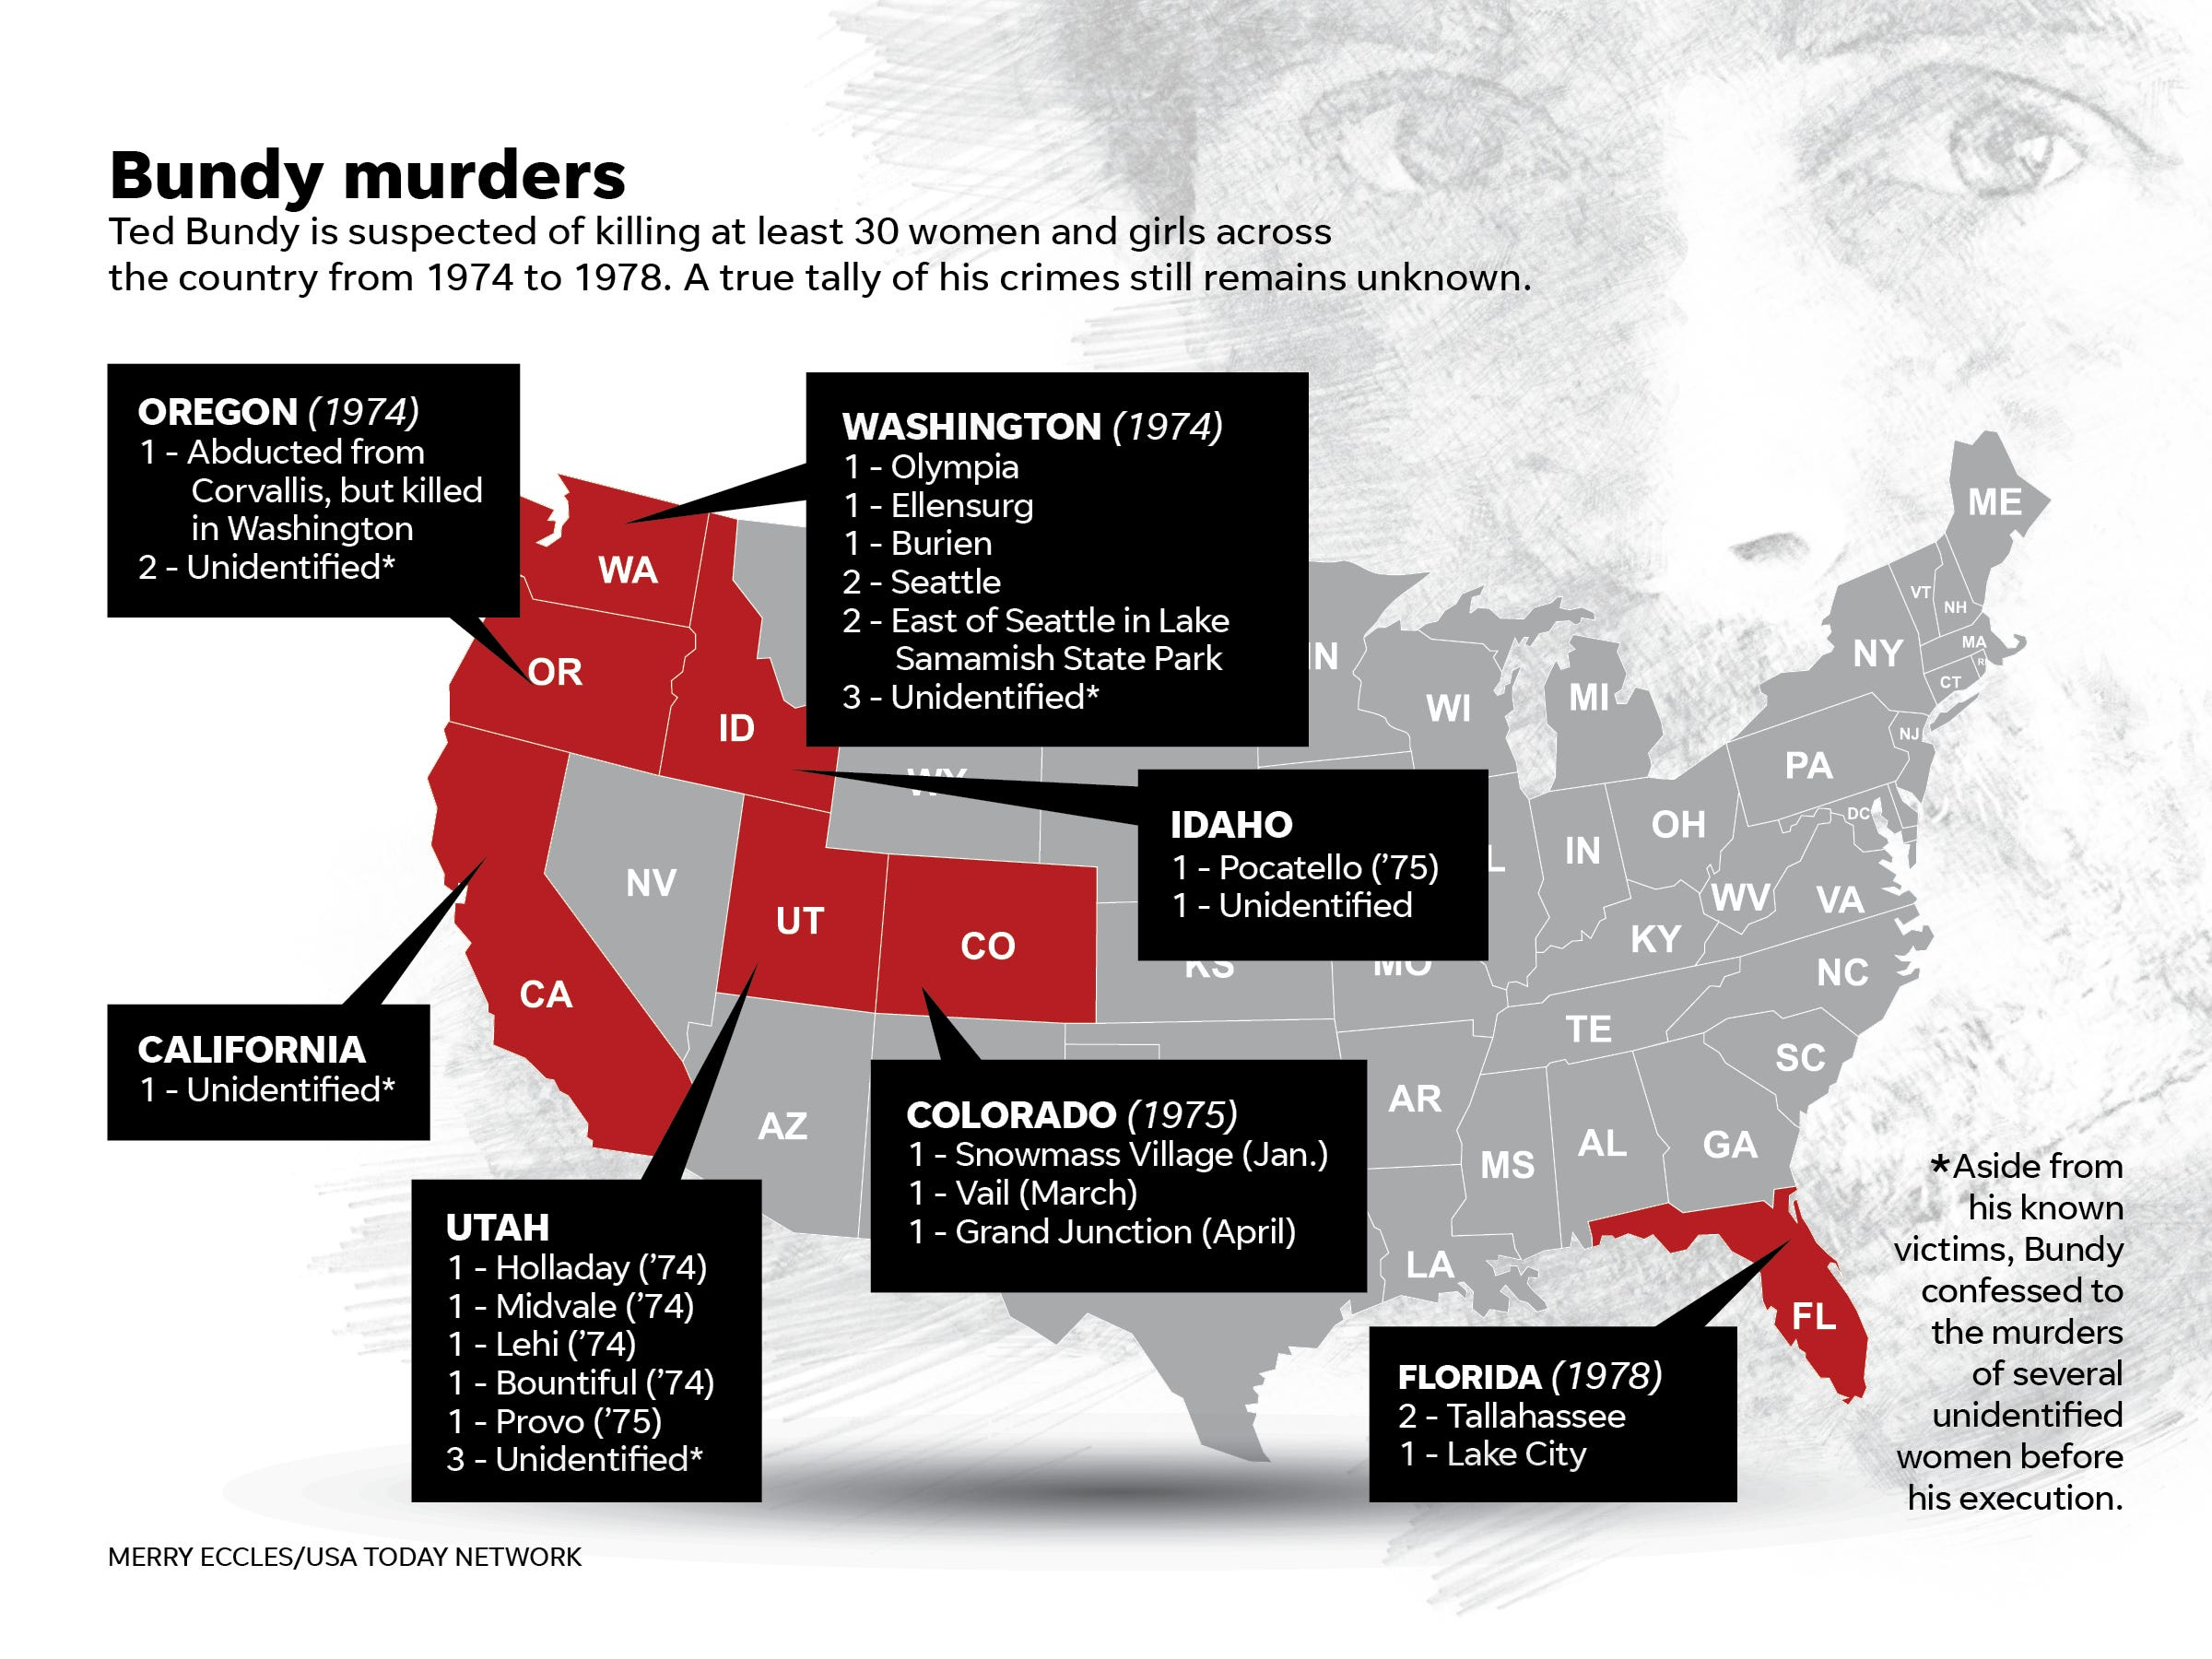 f4e12d556 12 murder in Snowmass the following year. It mentioned two other unnamed  female victims in Colorado, whose murders also bore similarities to those  in ...